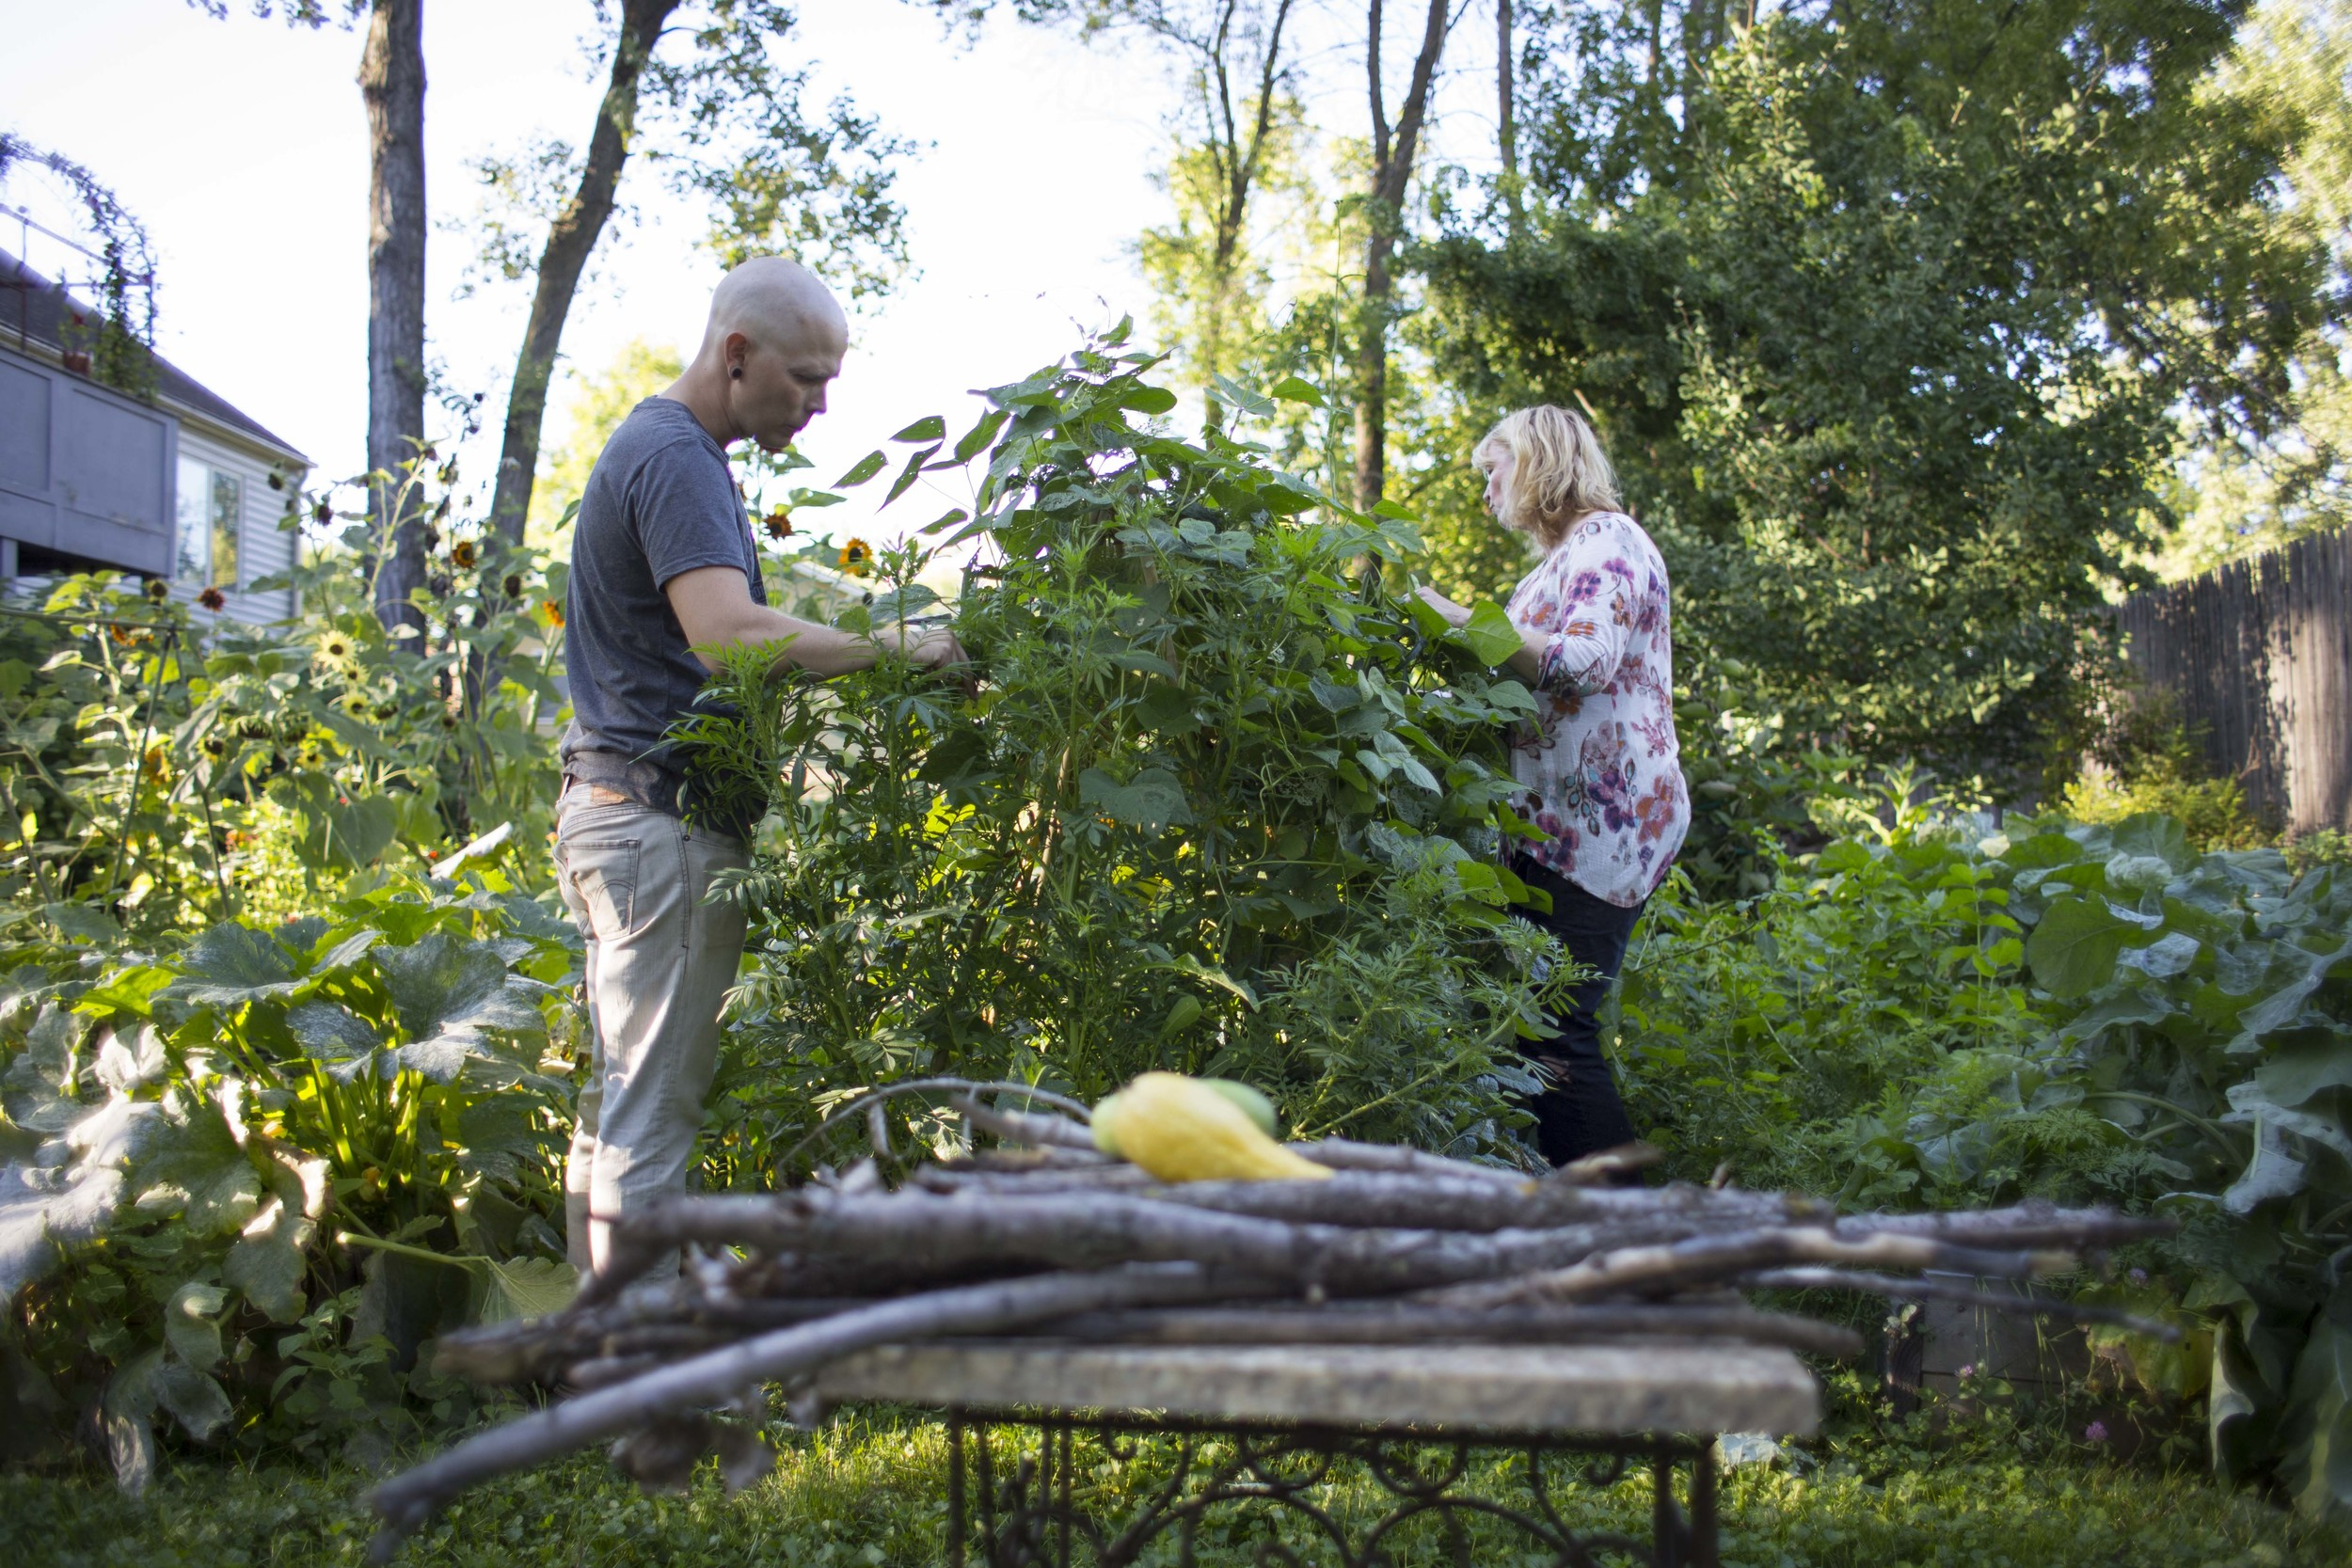 Nate and Jessica in the garden